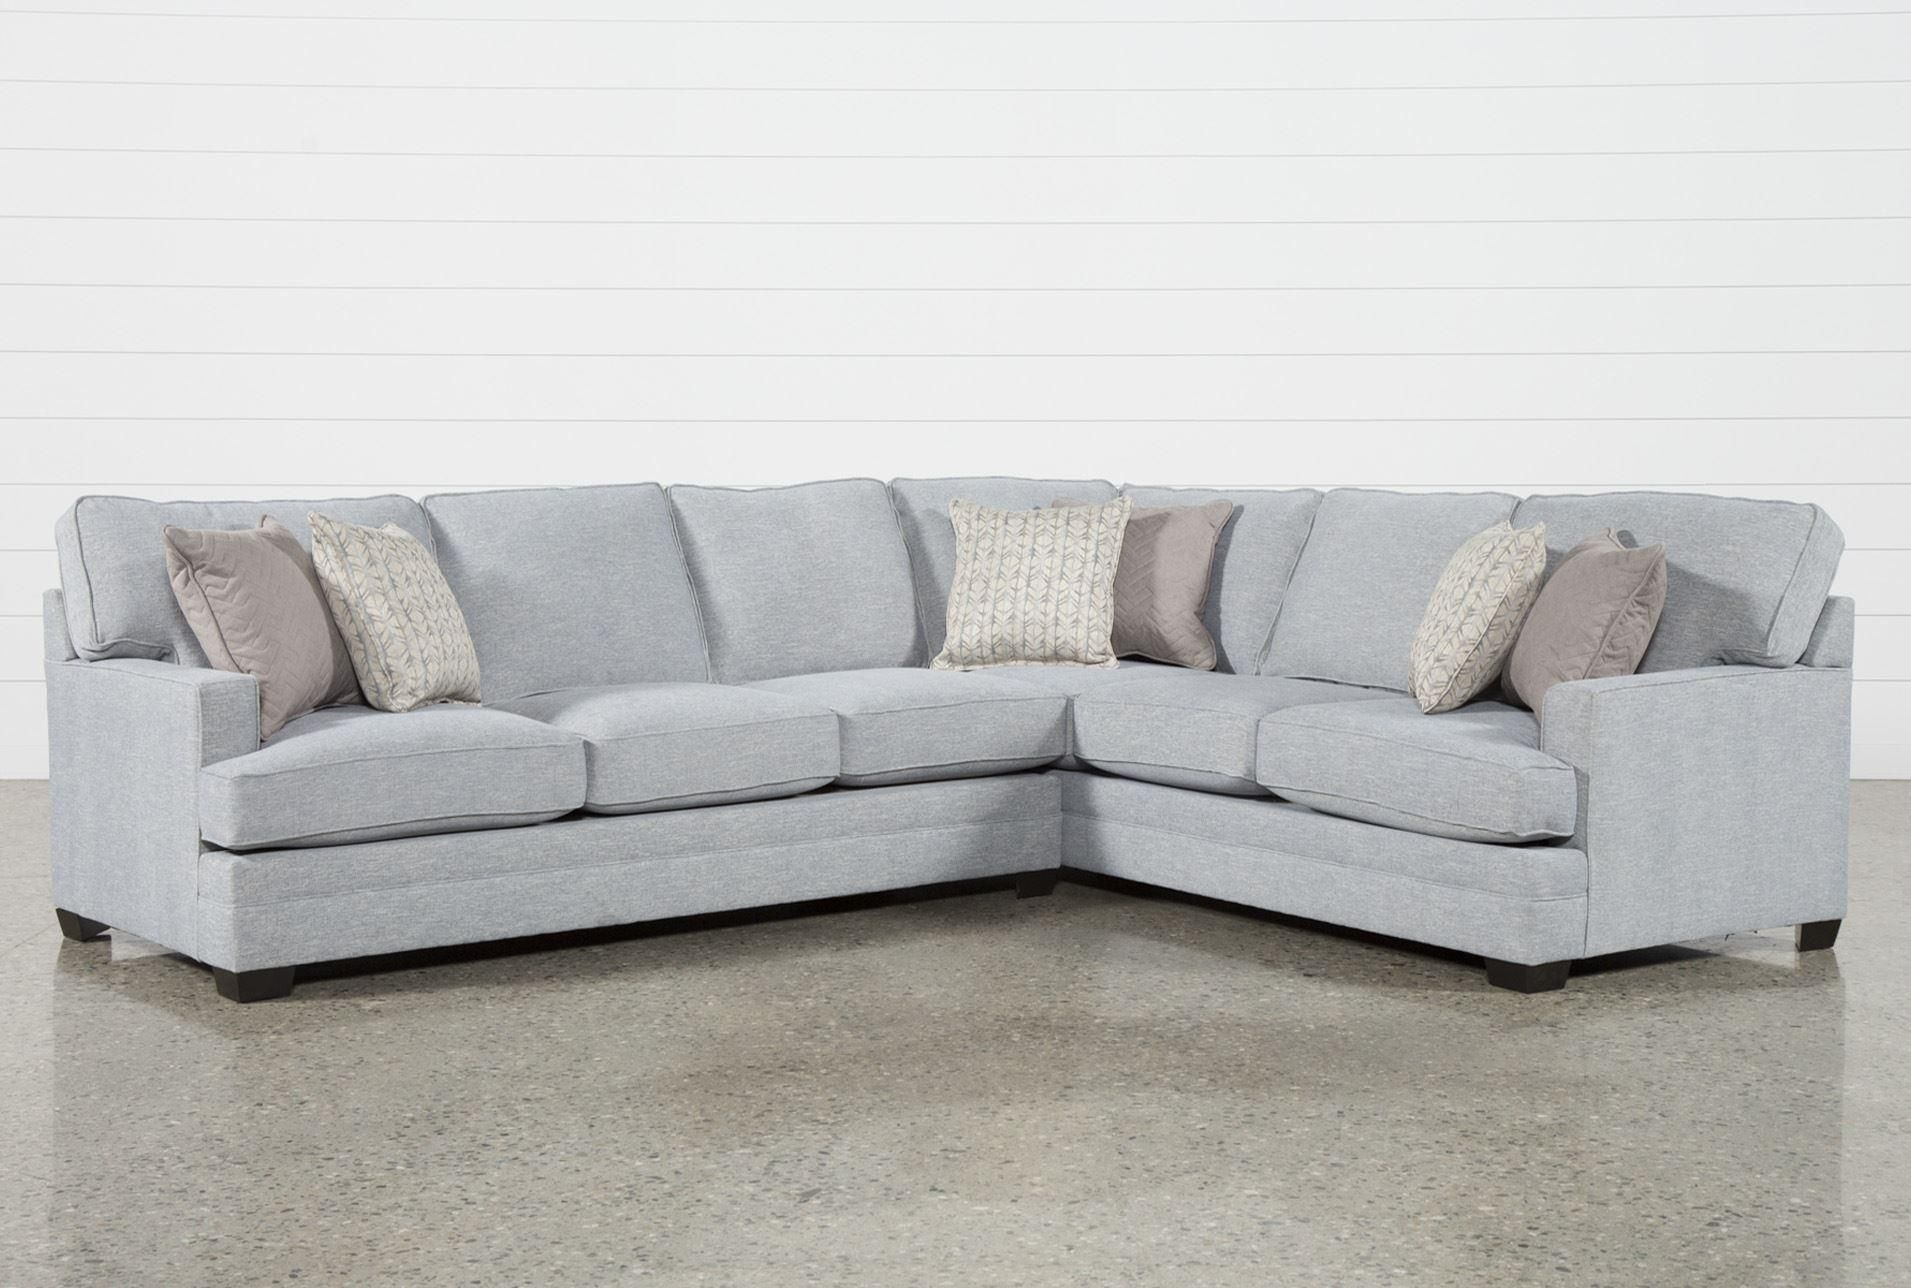 Josephine 2 Piece Sectional W/laf Sofa | For The Home | Pinterest in Cohen Down 2 Piece Sectionals (Image 12 of 30)